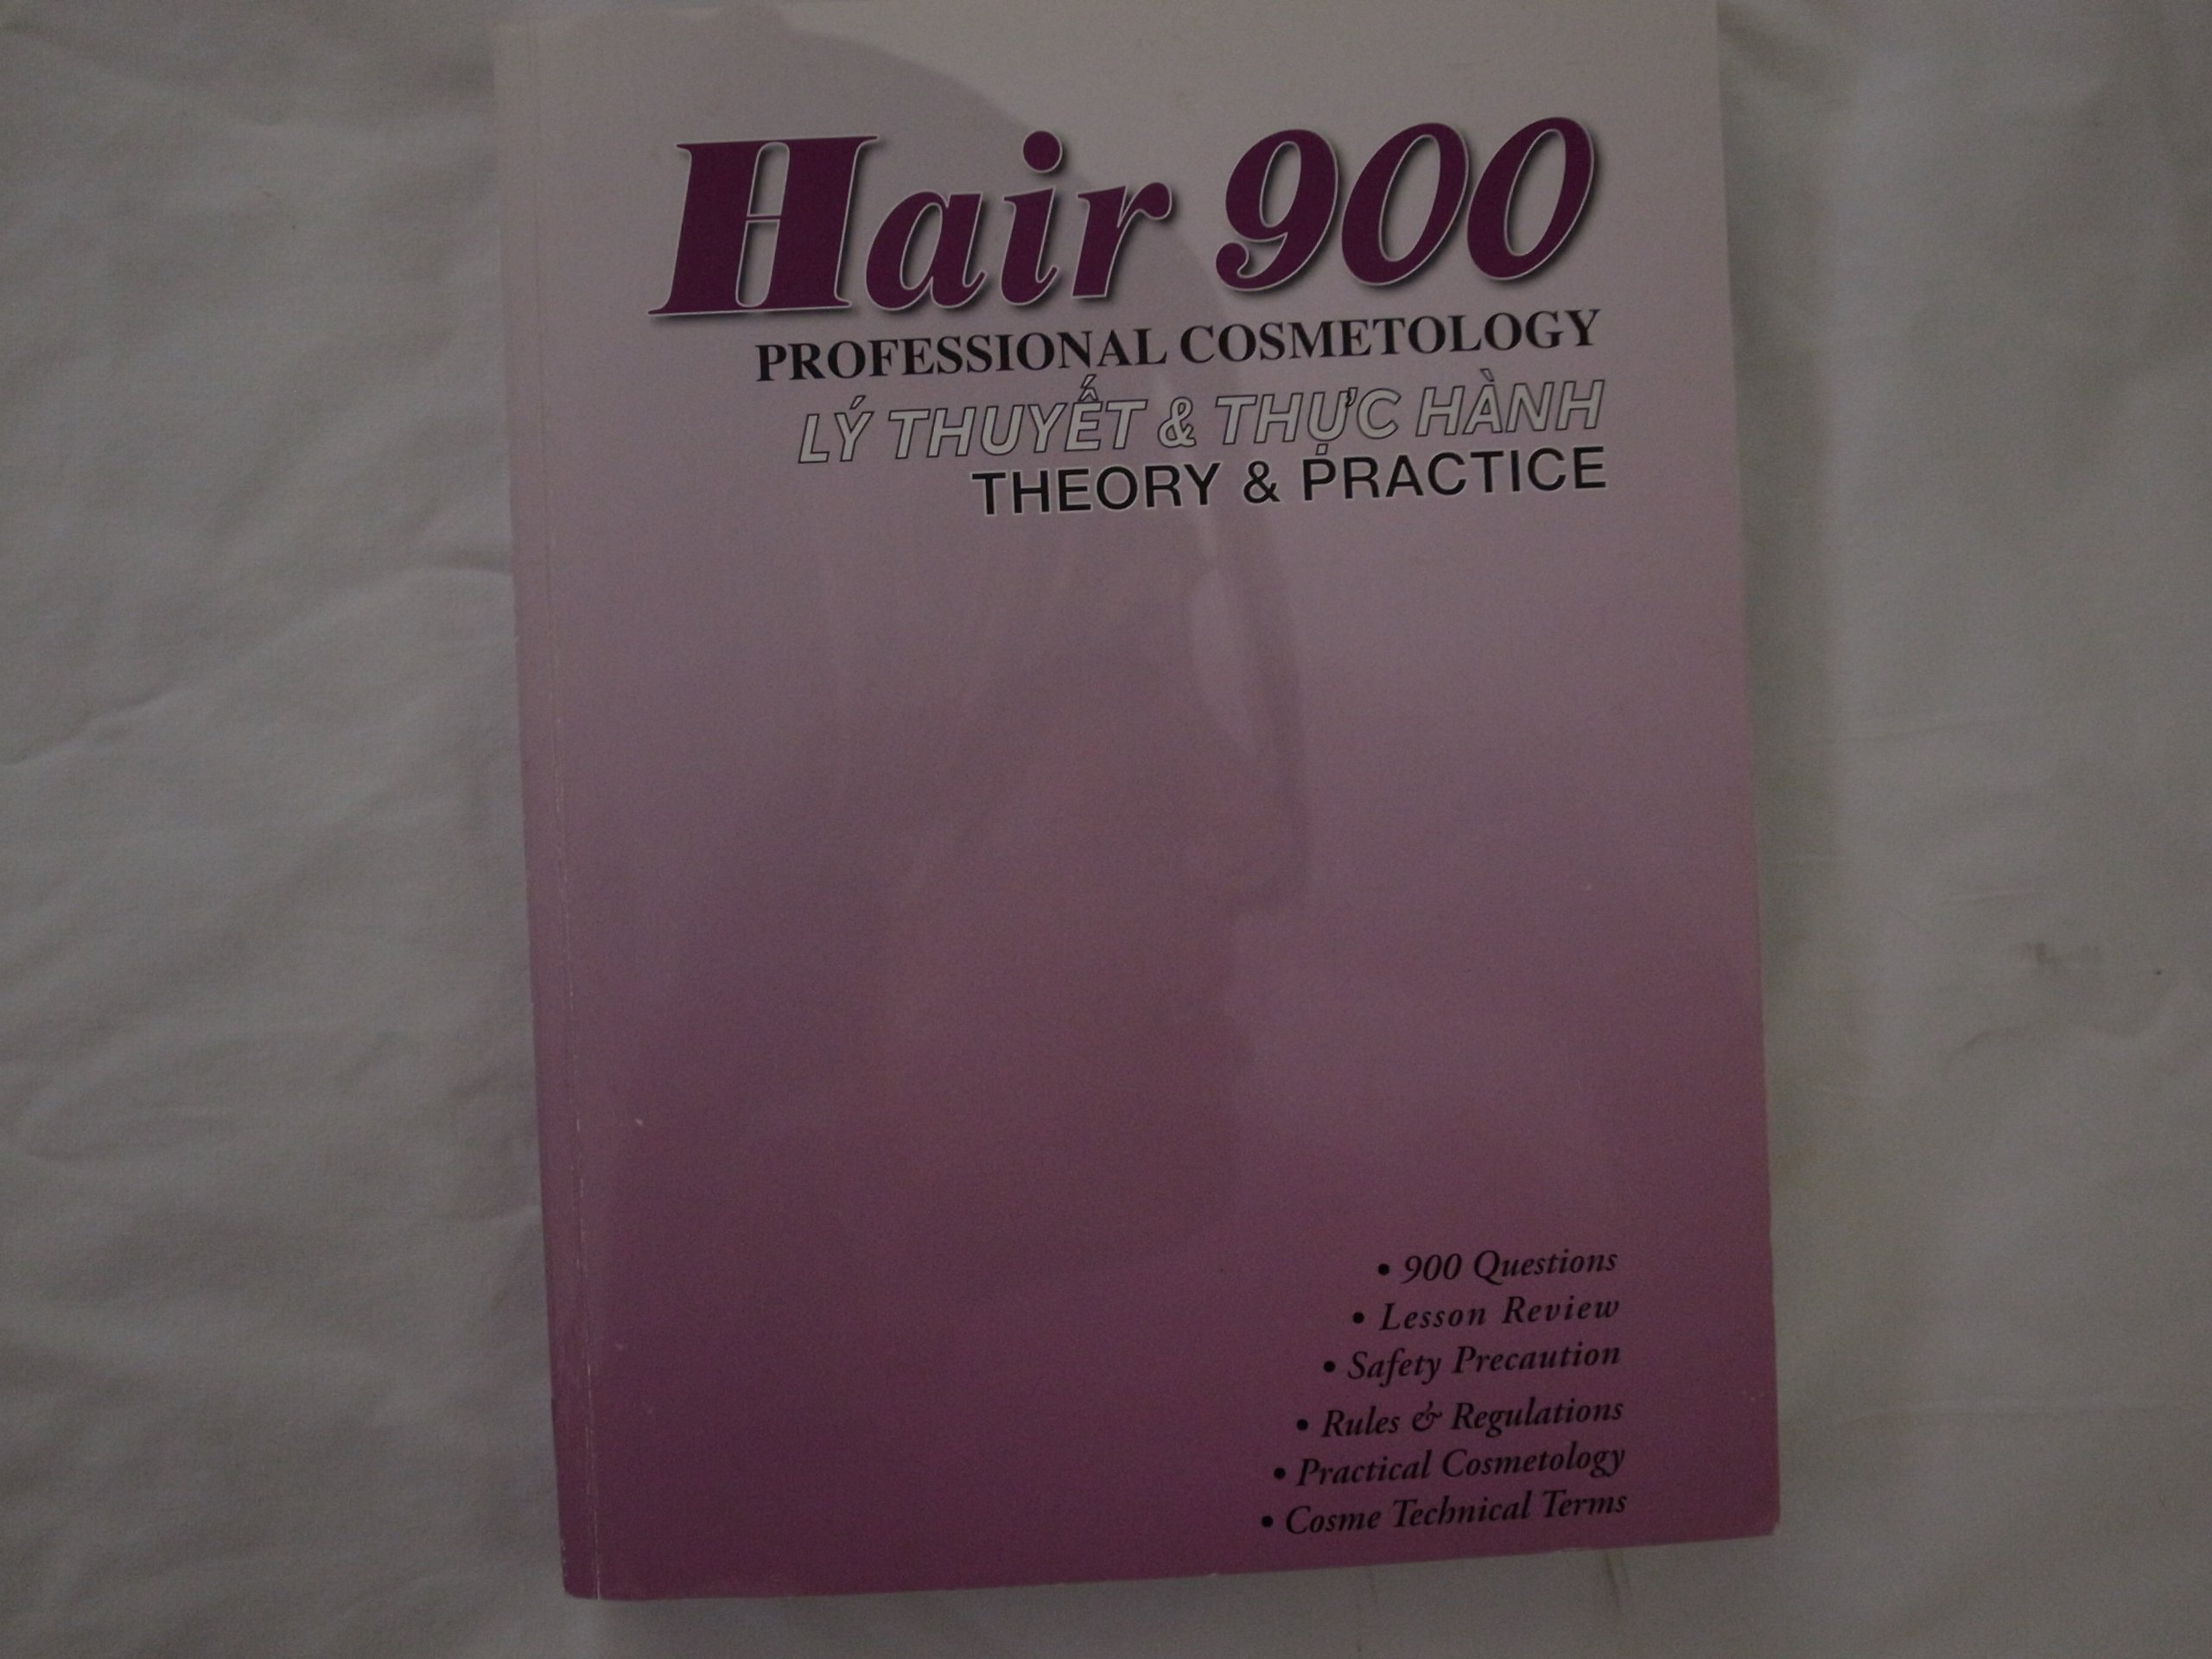 Hair 900 professional cosmetology theory practice van le hair 900 professional cosmetology theory practice van le 9780979965128 amazon books fandeluxe Images